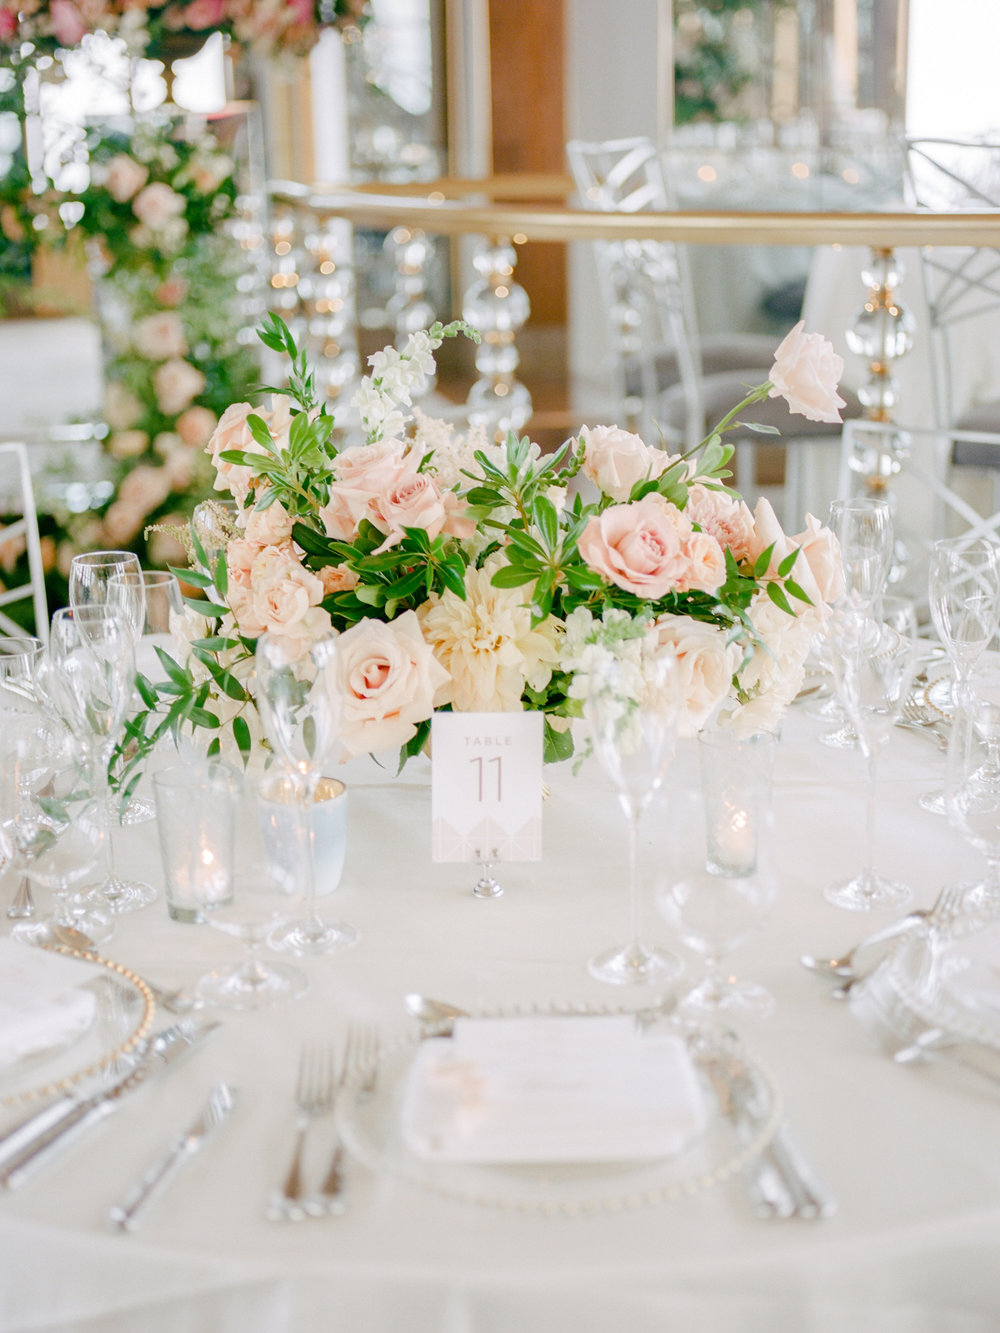 Rainbow Room Wedding, planner Ang Weddings and Events, photography Heather Waraksa, florals Poppies and Posies, menu Bella Figura, rentals Party Rental Ltd